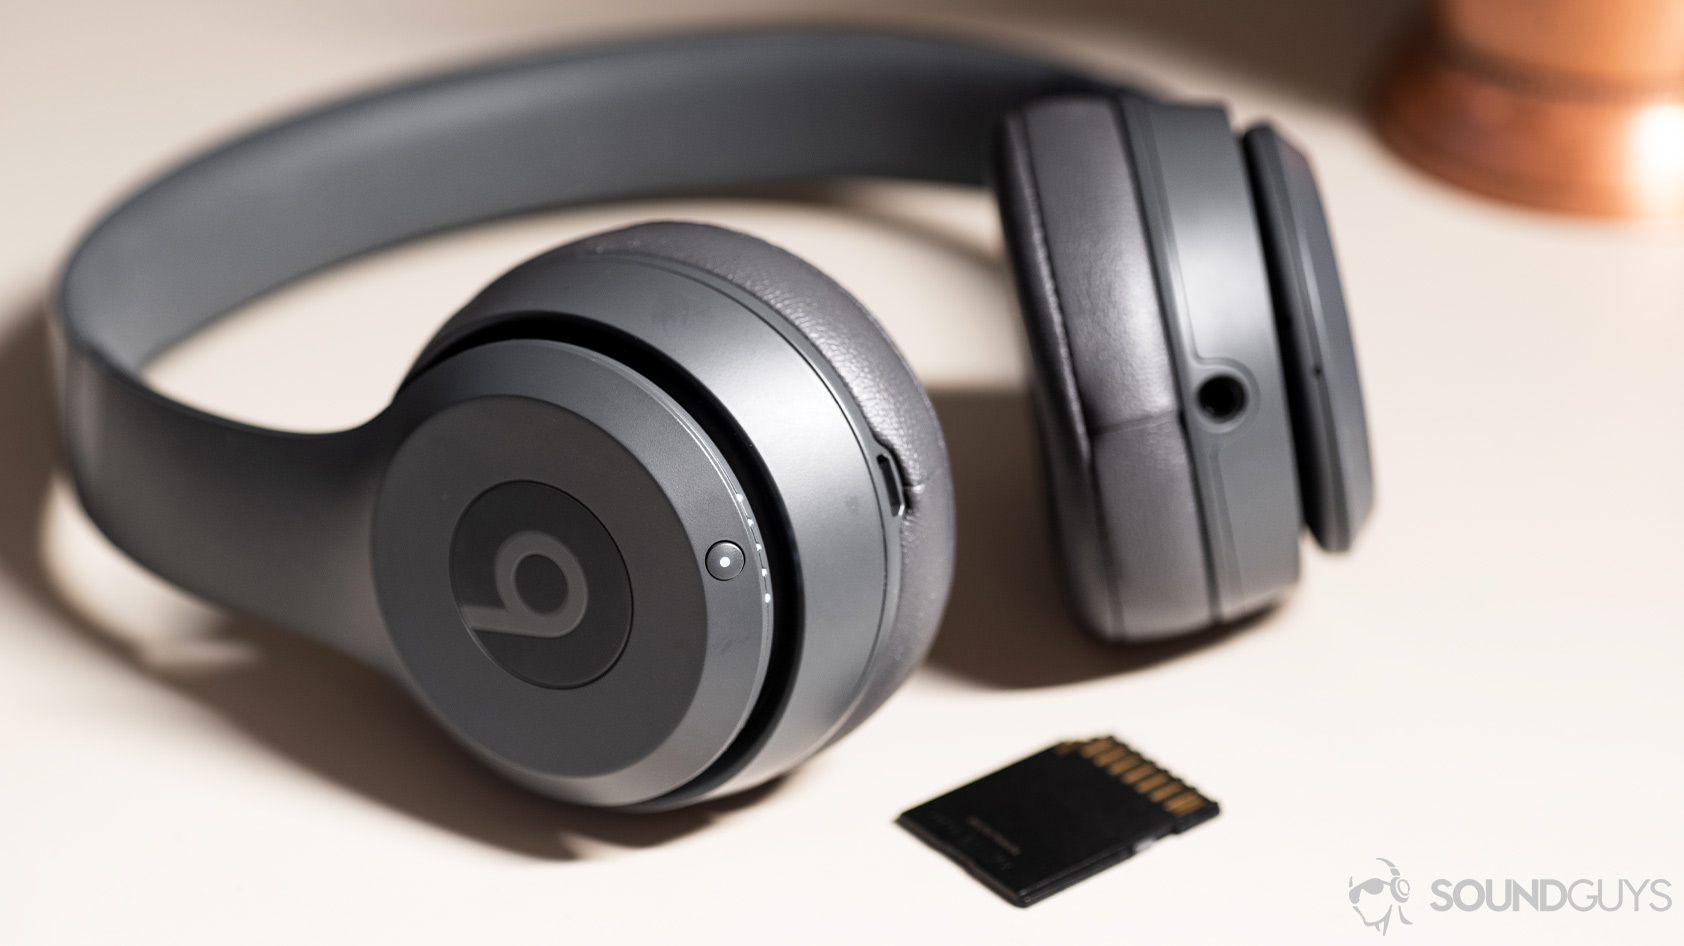 Beats Solo3 Wireless Review Good But Outdated Soundguys